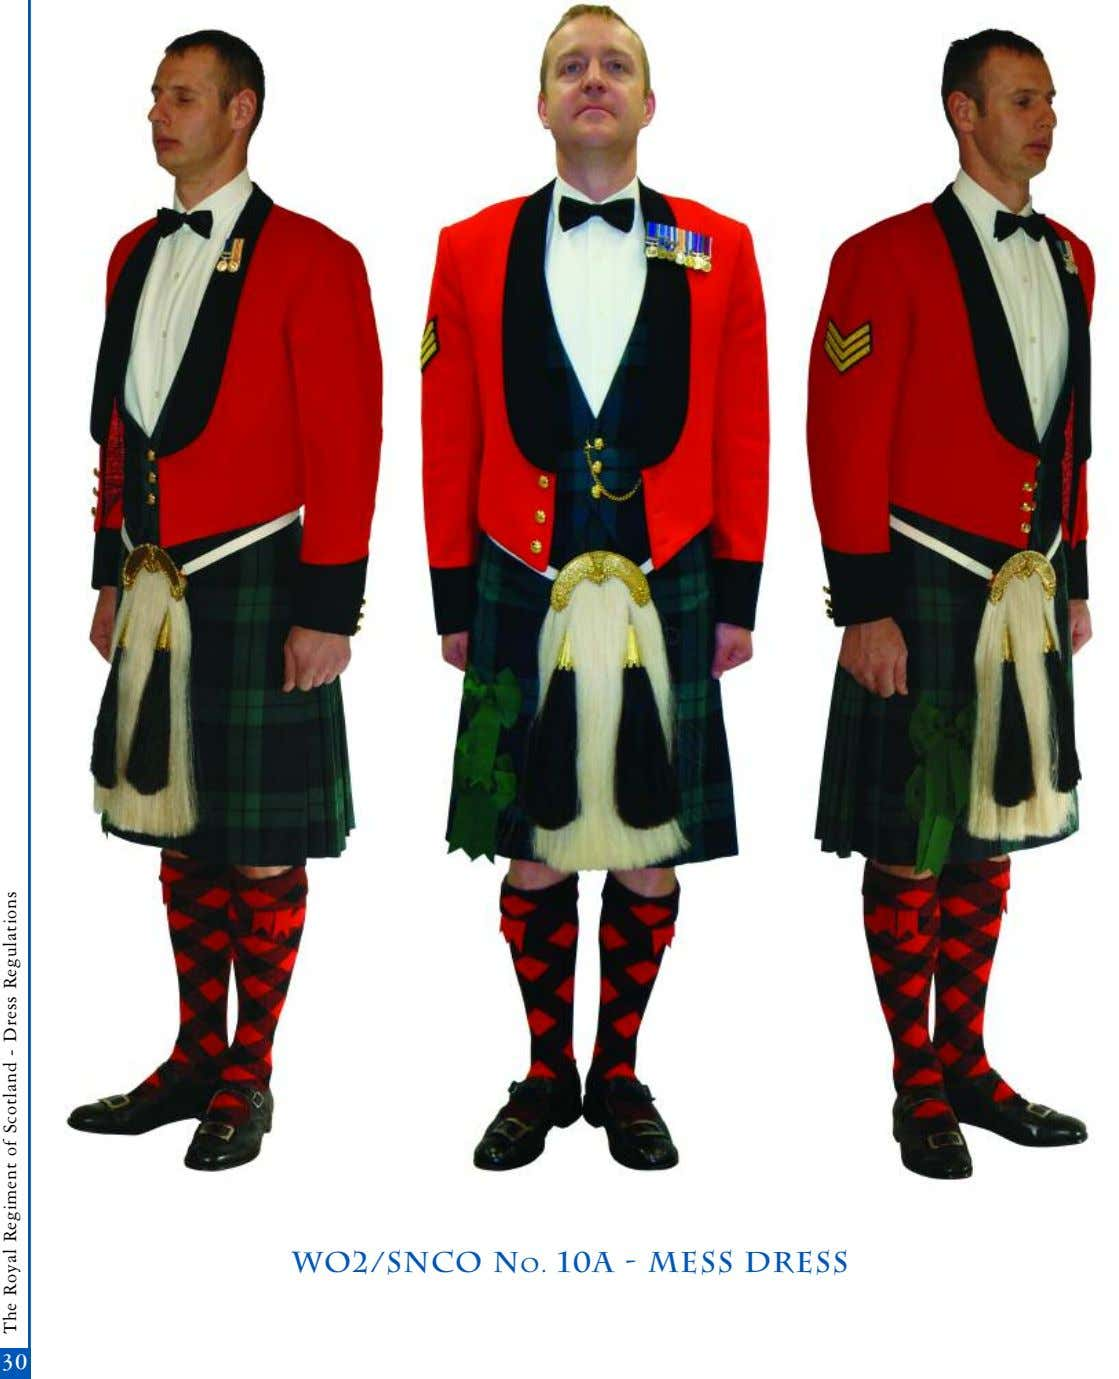 wo2/snco No. 10A - mess dress 3030 The Royal Regiment of Scotland - Dress Regulations